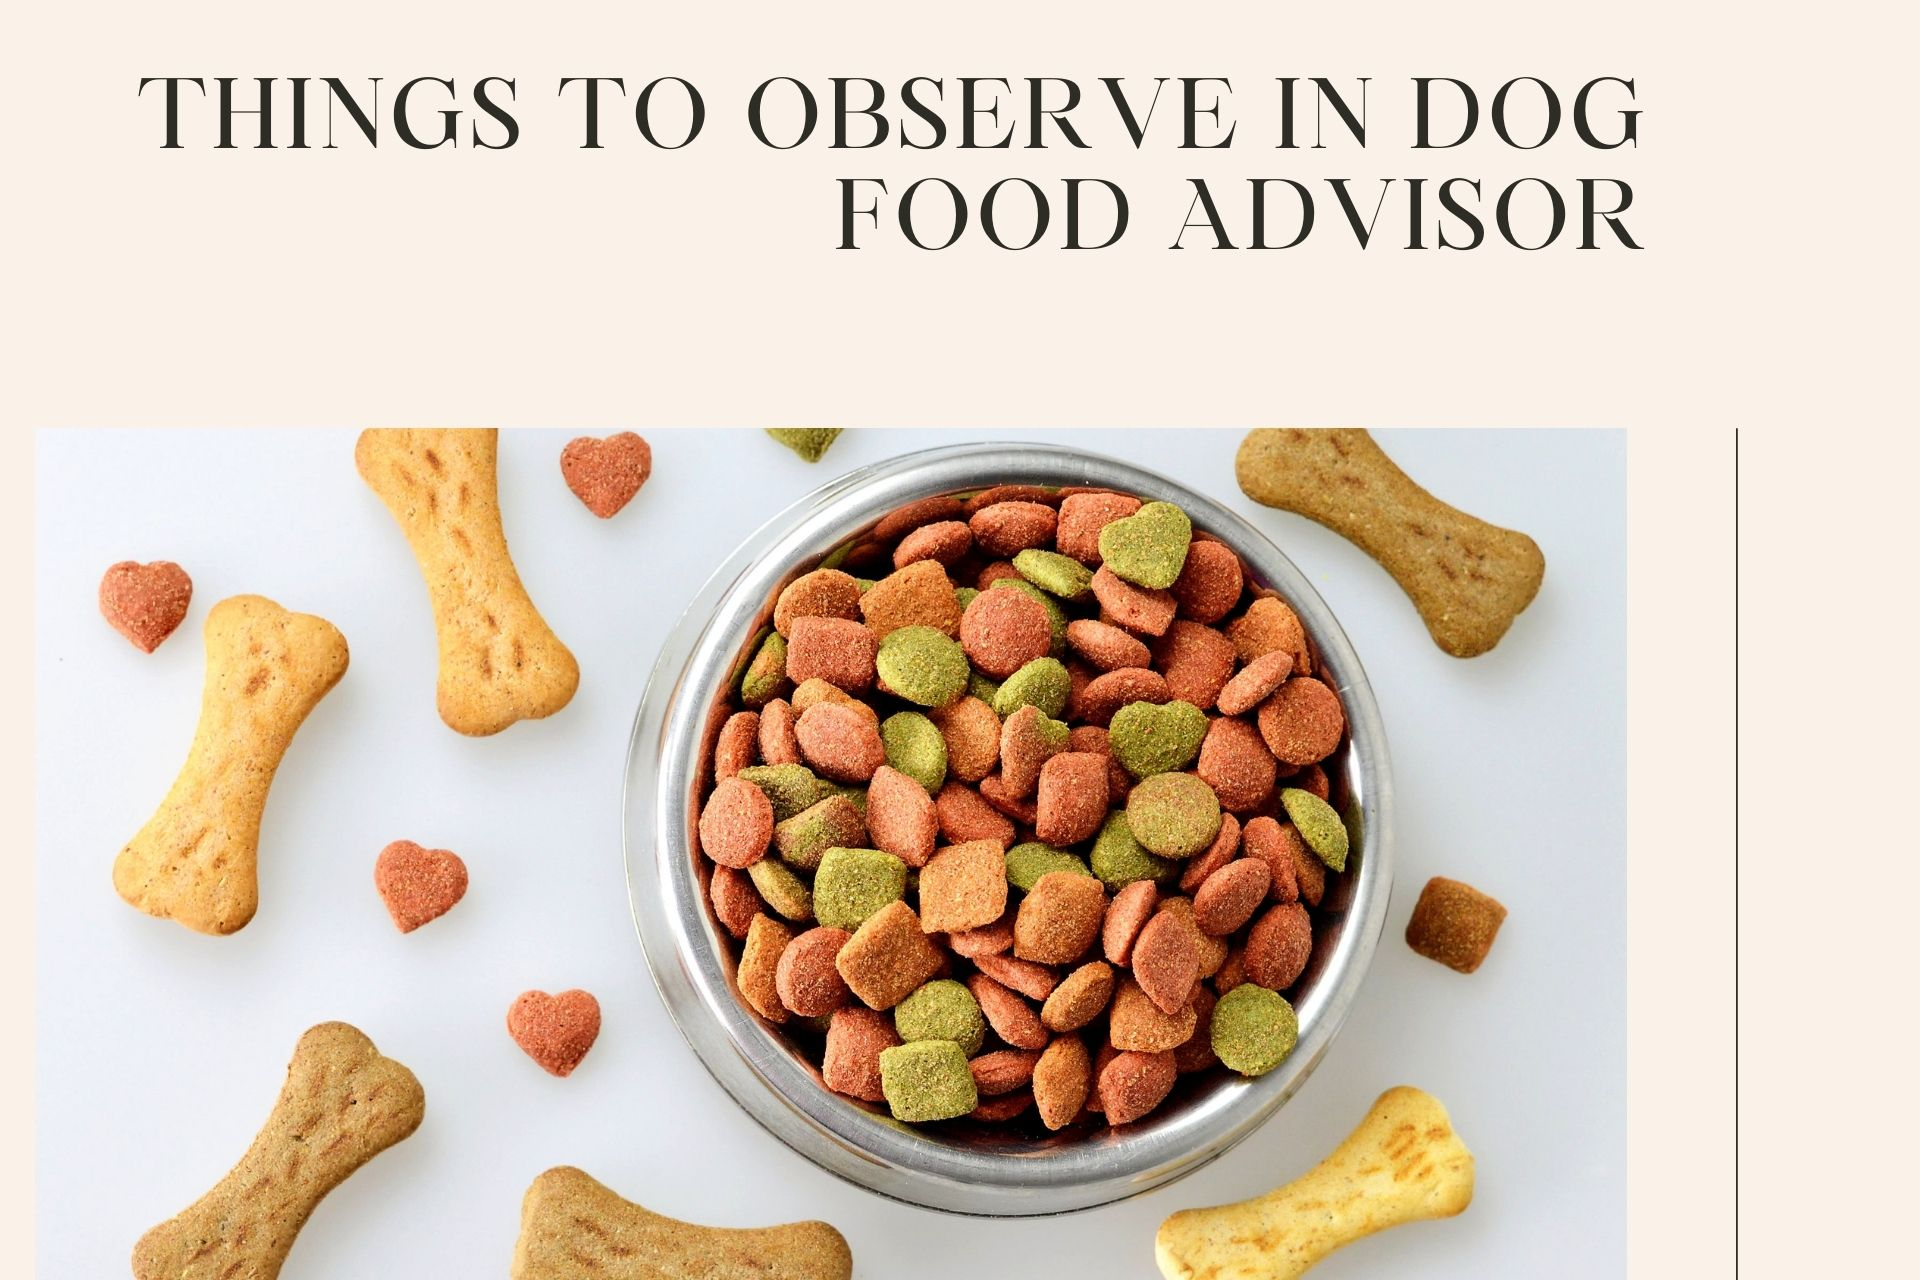 Important Things To Observe In Dog Food Advisor